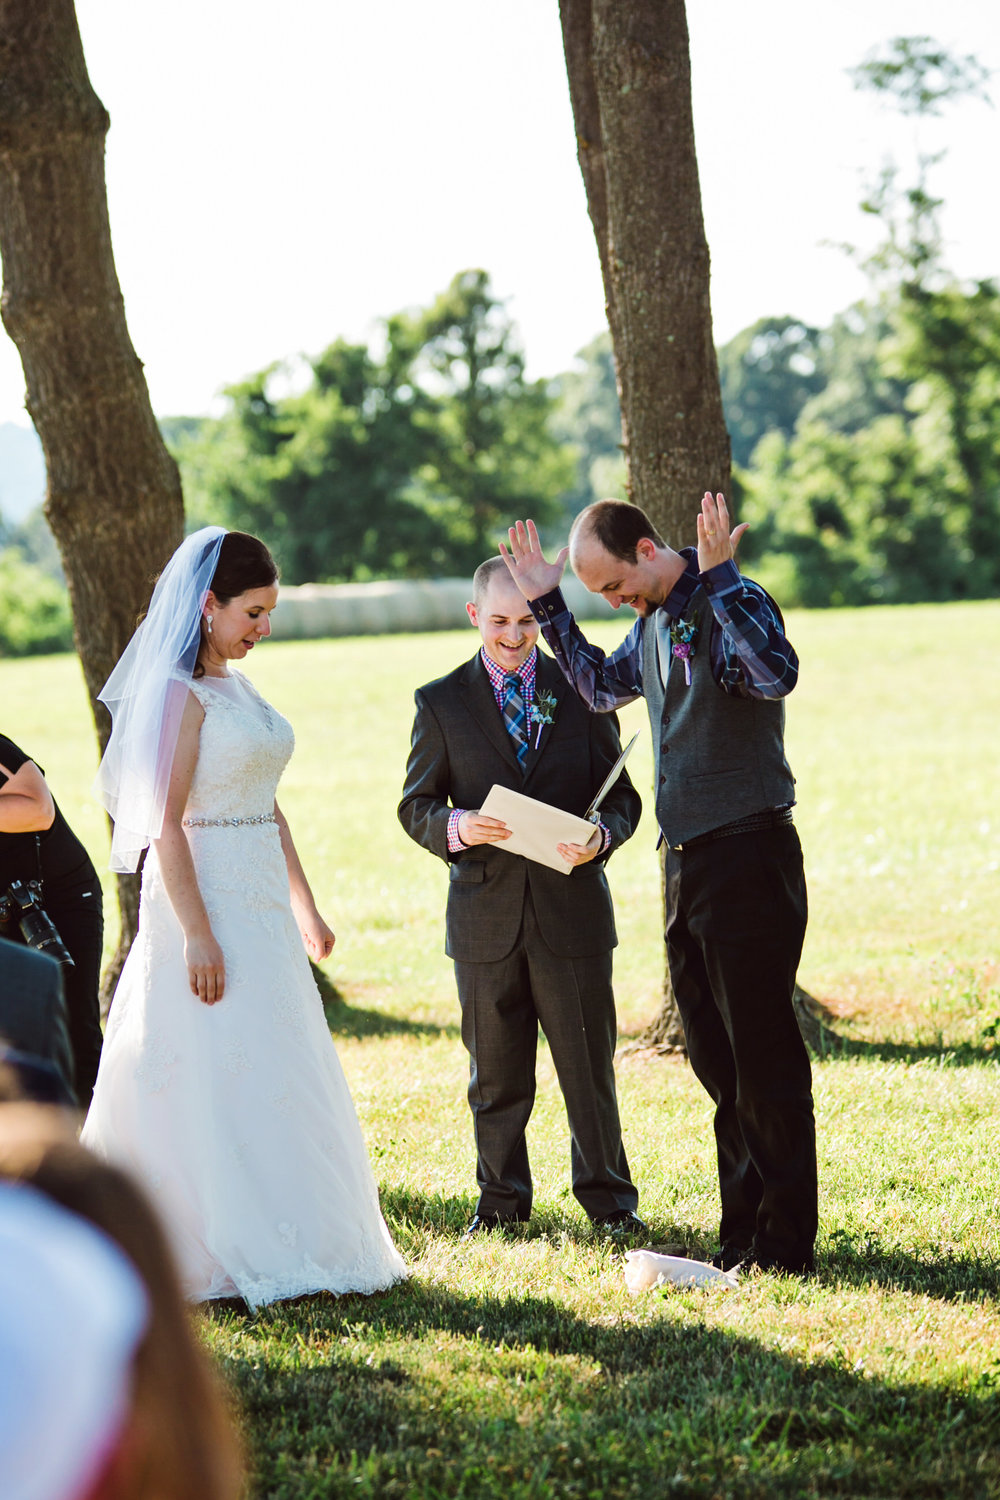 EastLynnFarmWedding-Steph&Aaron-Ceremony-12.jpg